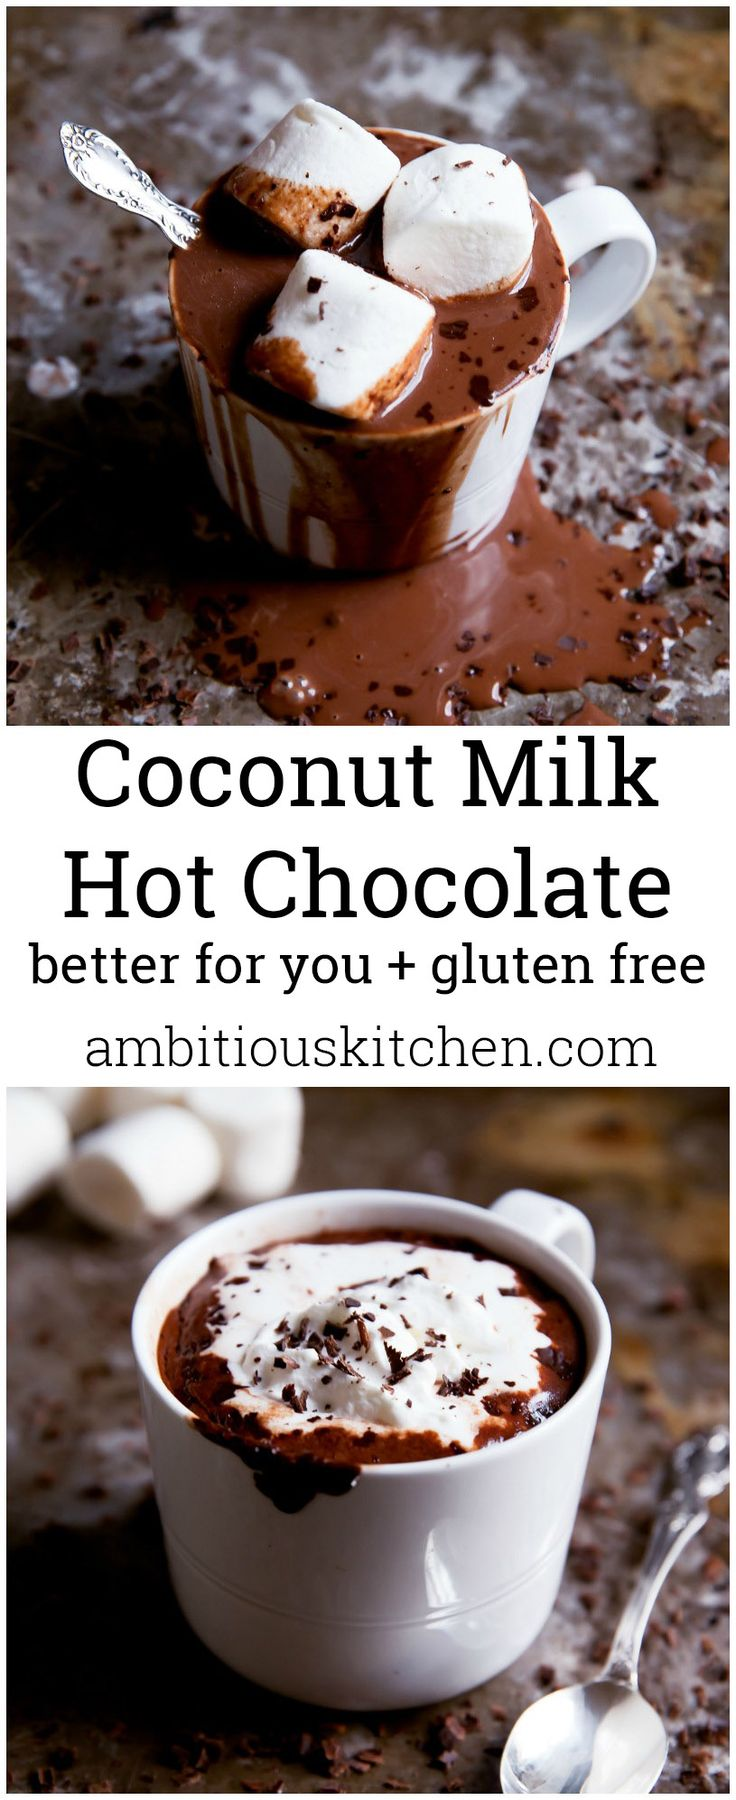 Creamy, thick hot chocolate made with coconut milk and dark chocolate. A better for you version made with real ingredients!